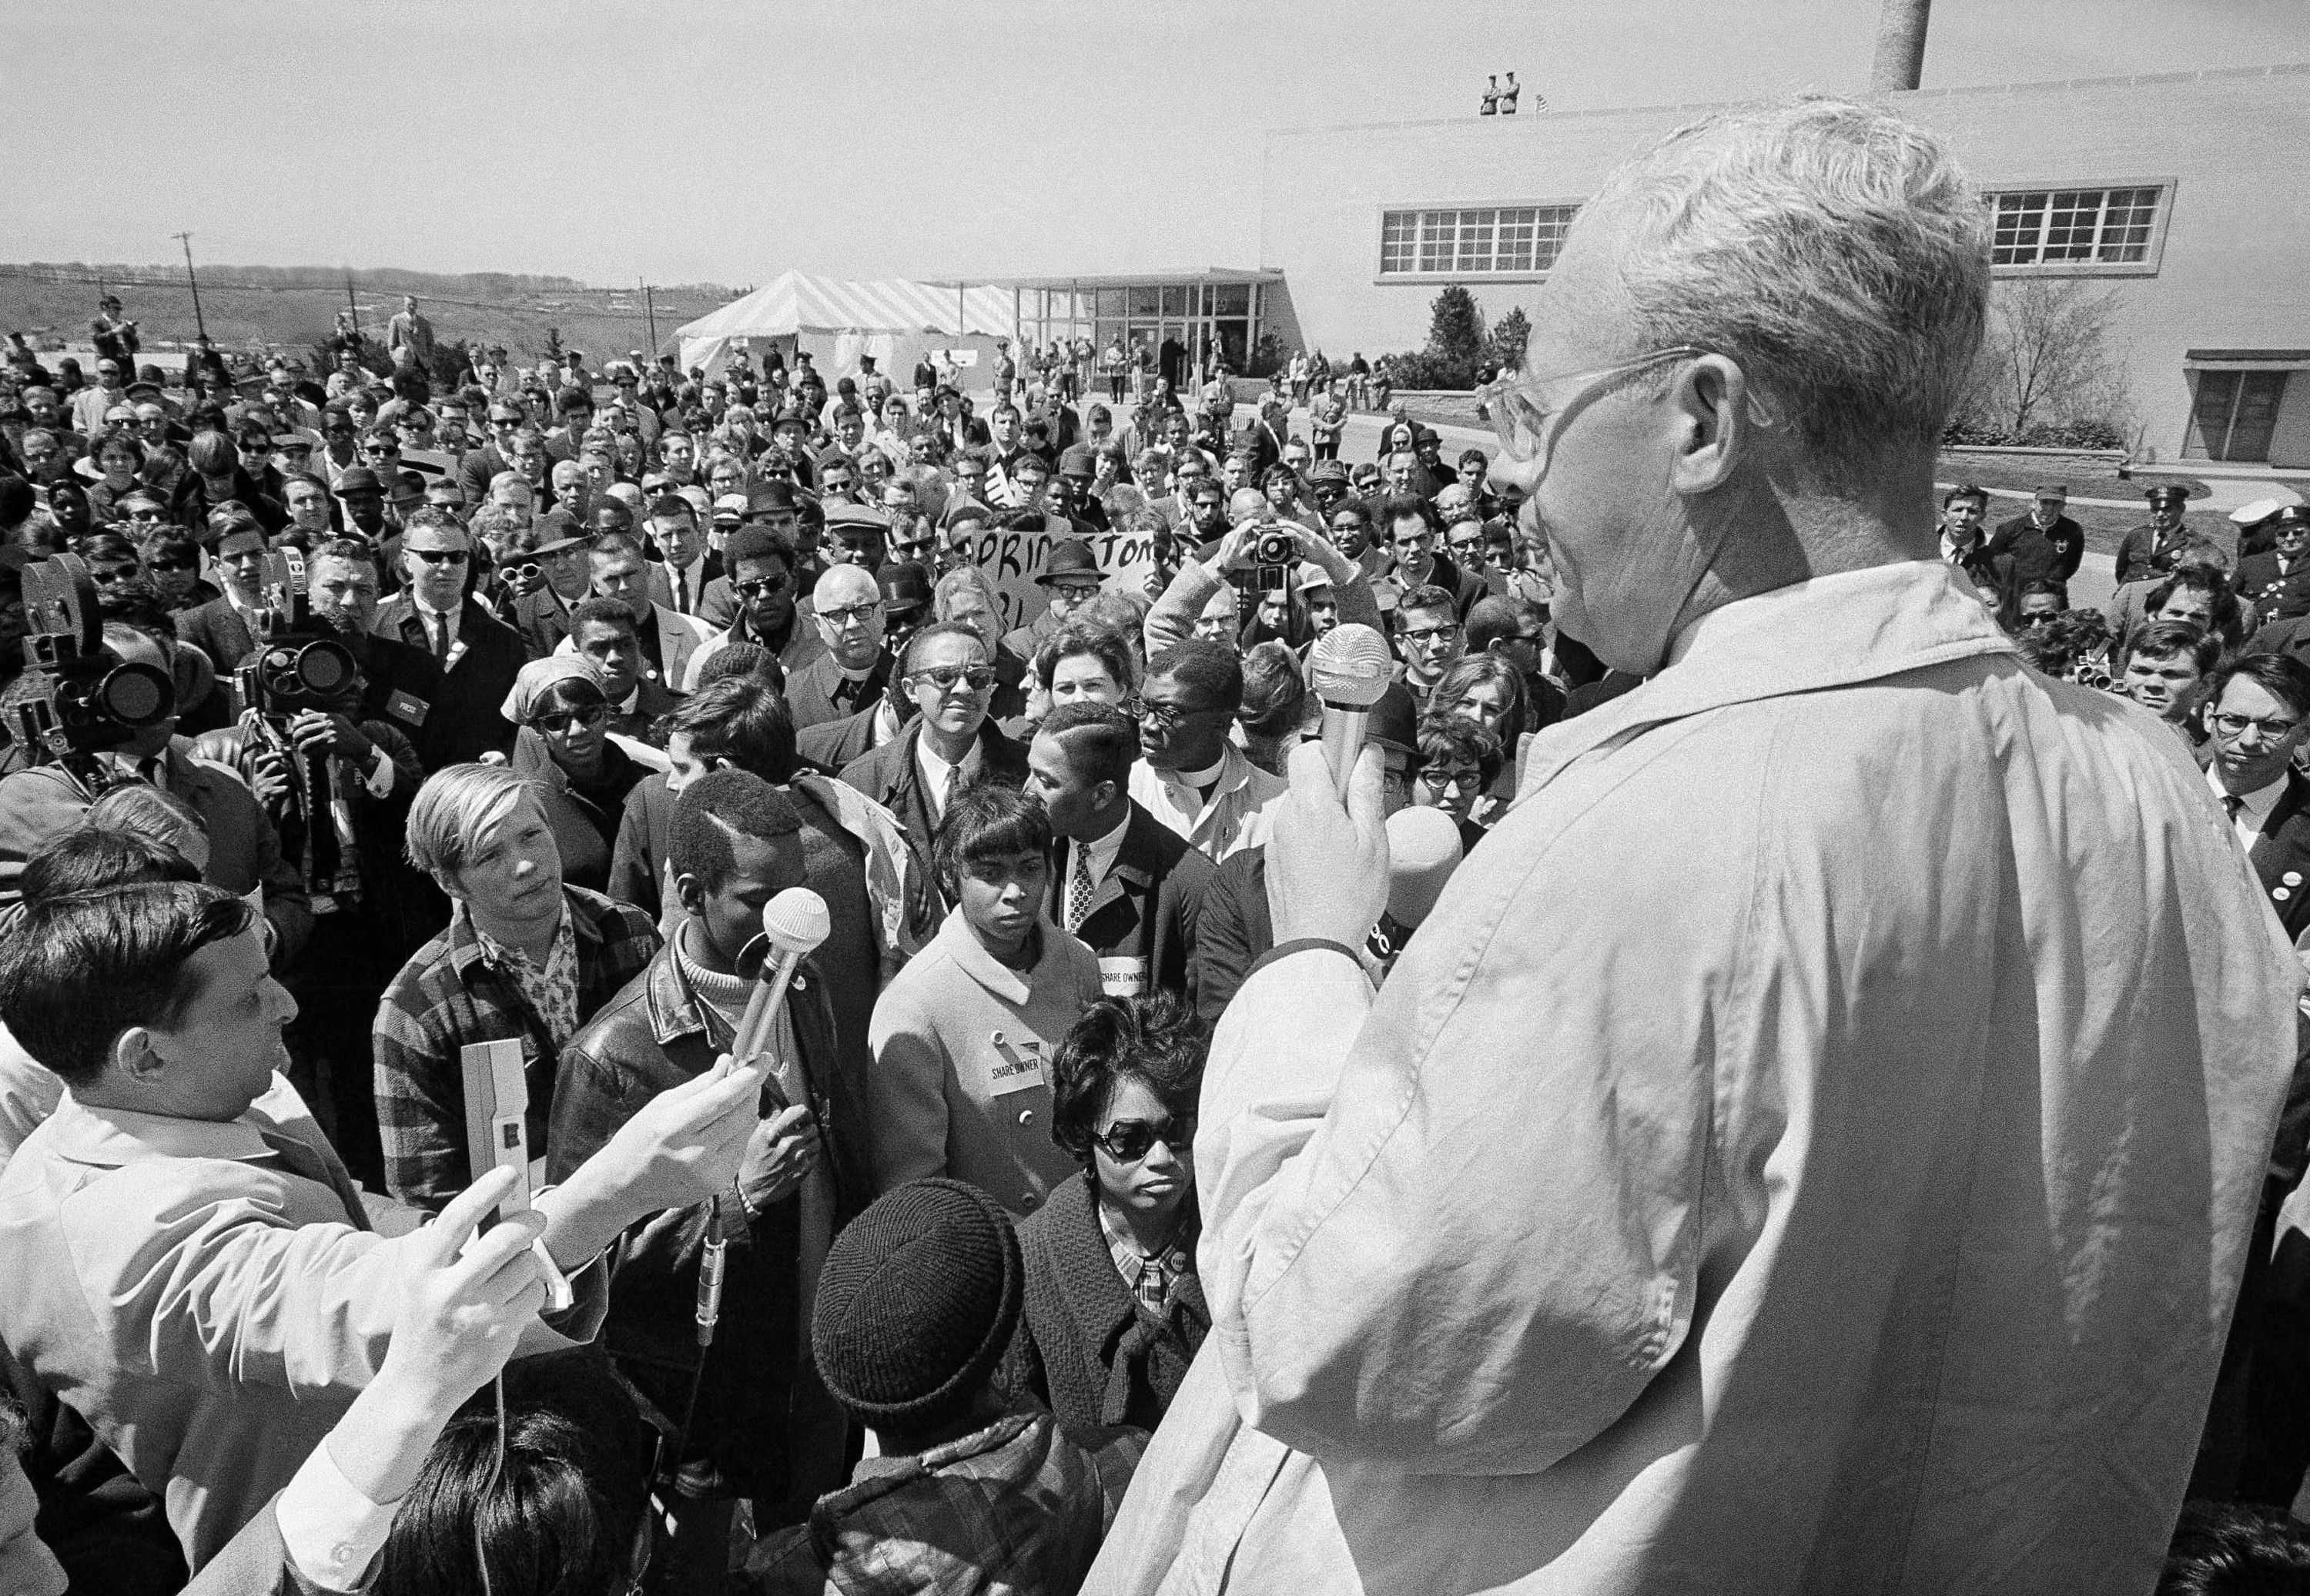 Saul Alinsky addressing a crowd, photographer unknown